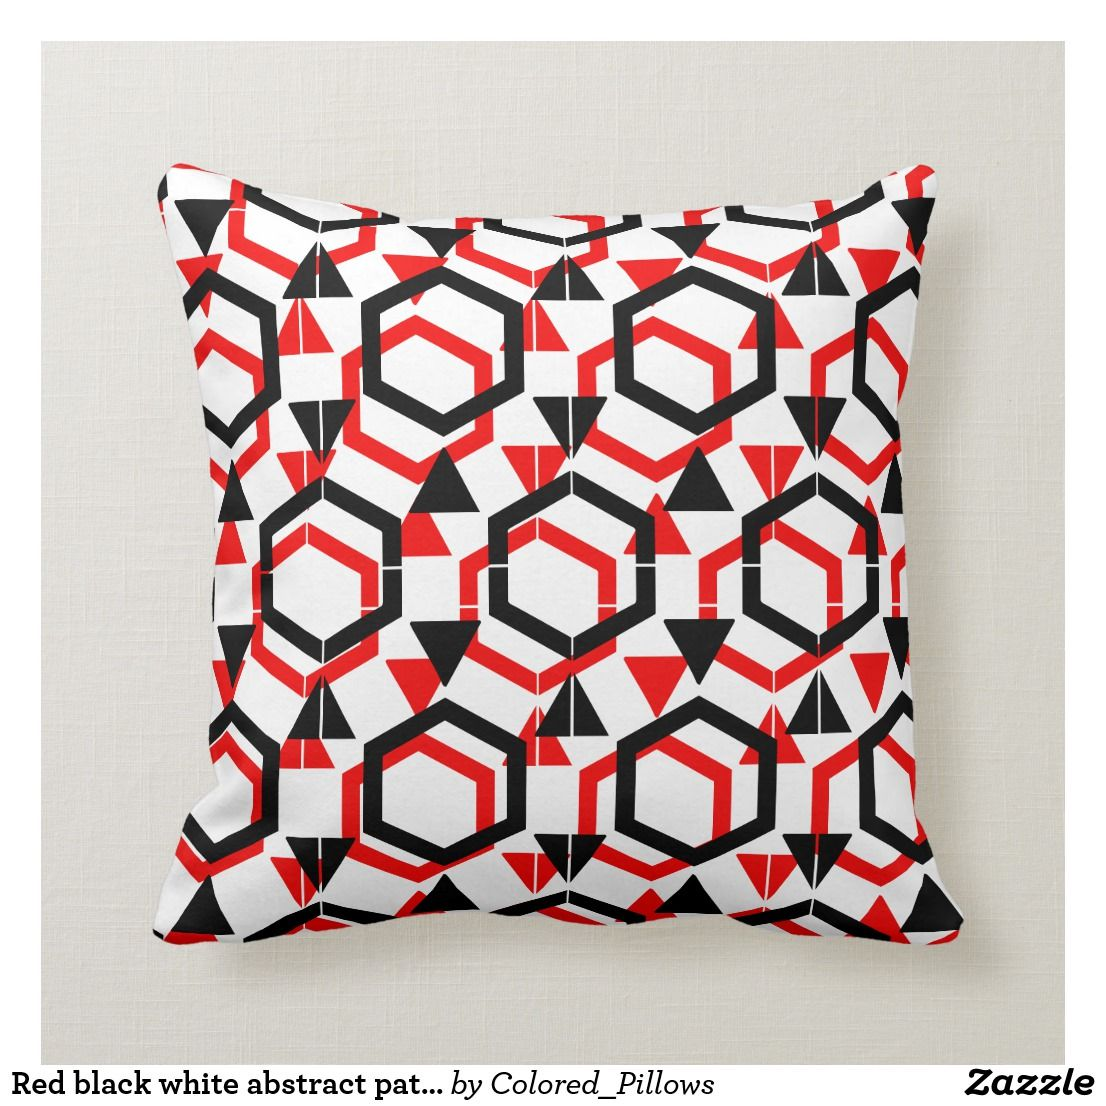 Red Black White Abstract Pattern Solid Back Throw Pillow Zazzle Com With Images Throw Pillows Black And Red Pillows